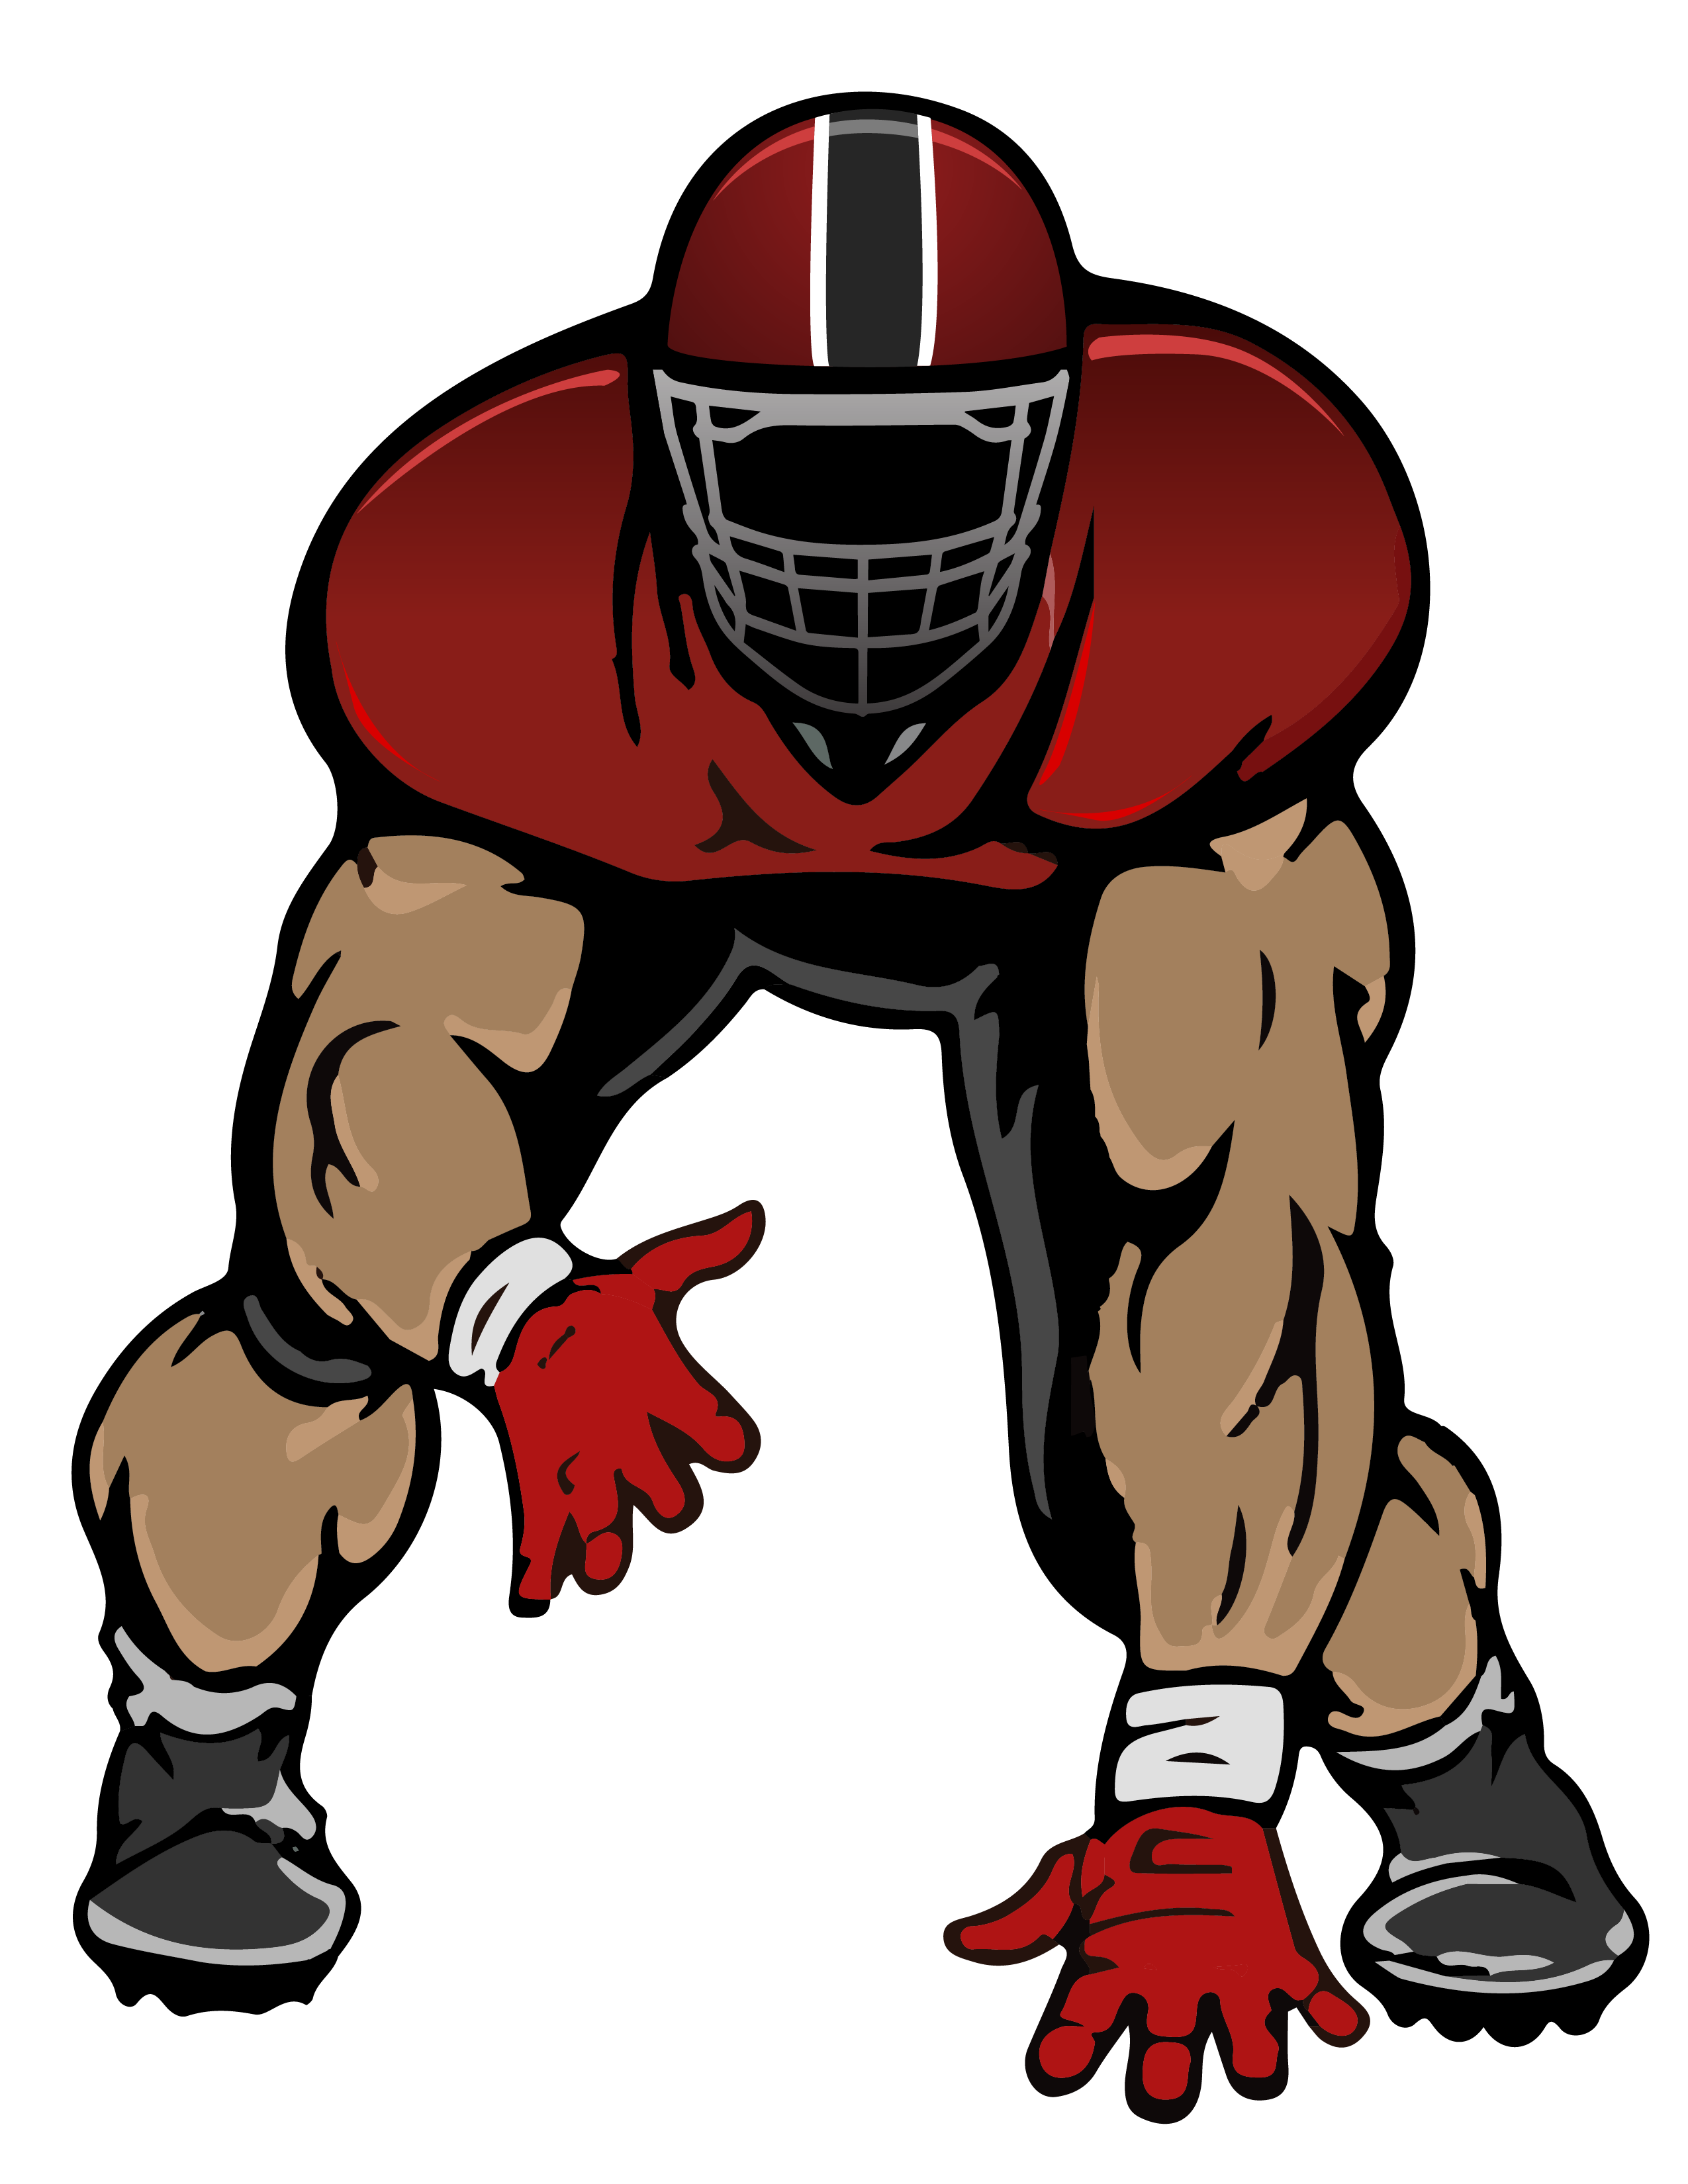 Football stance clipart clip art free stock NFL Three-point stance American football College football - cam ... clip art free stock